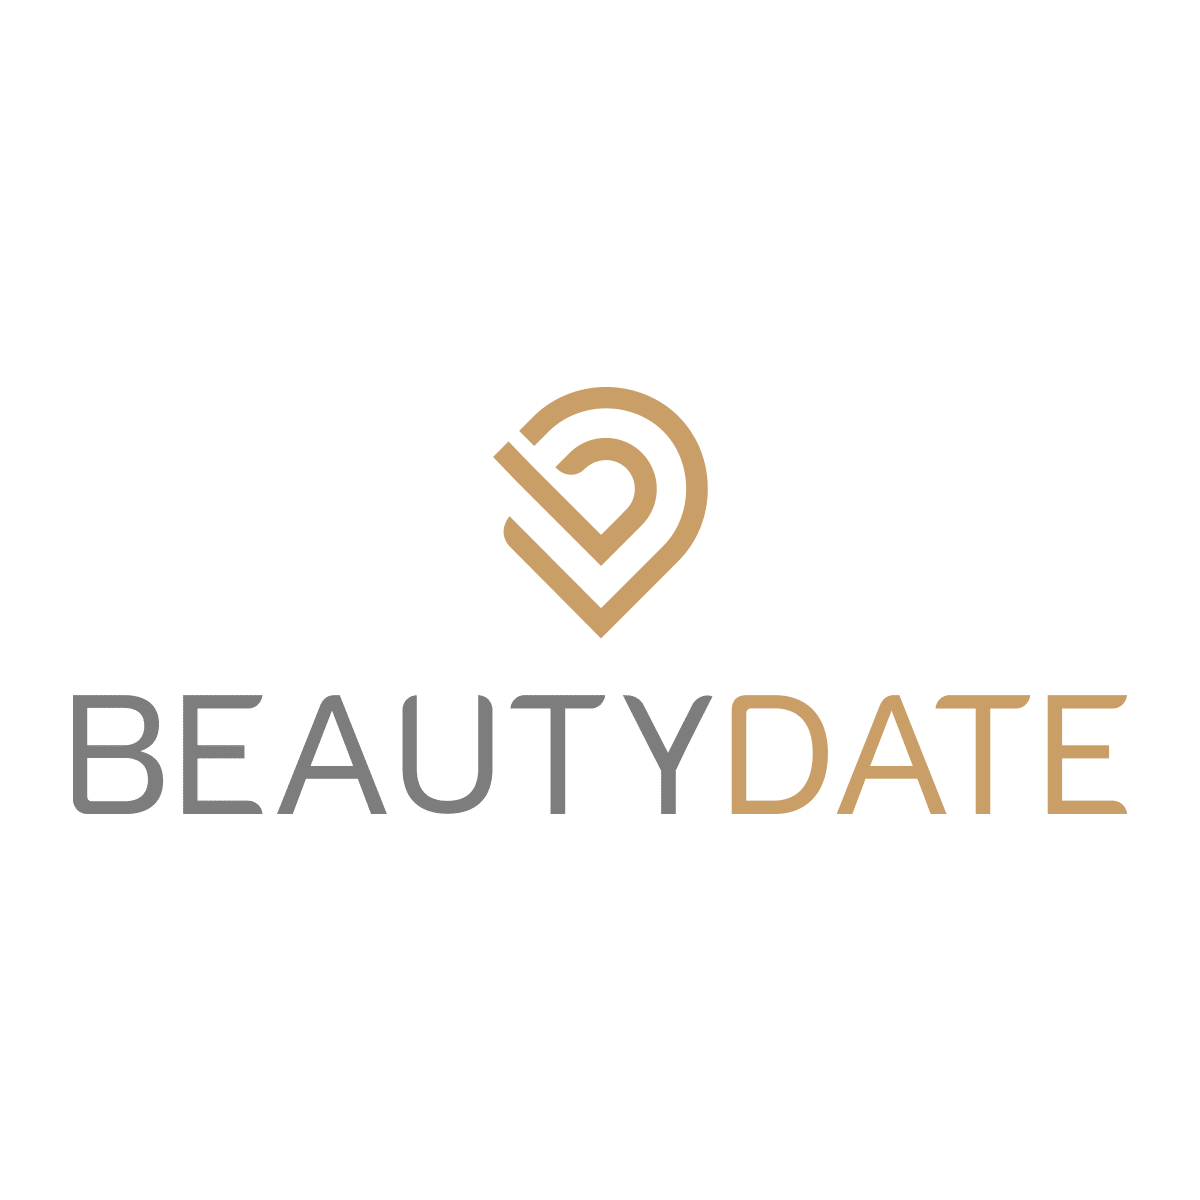 Beauty dating